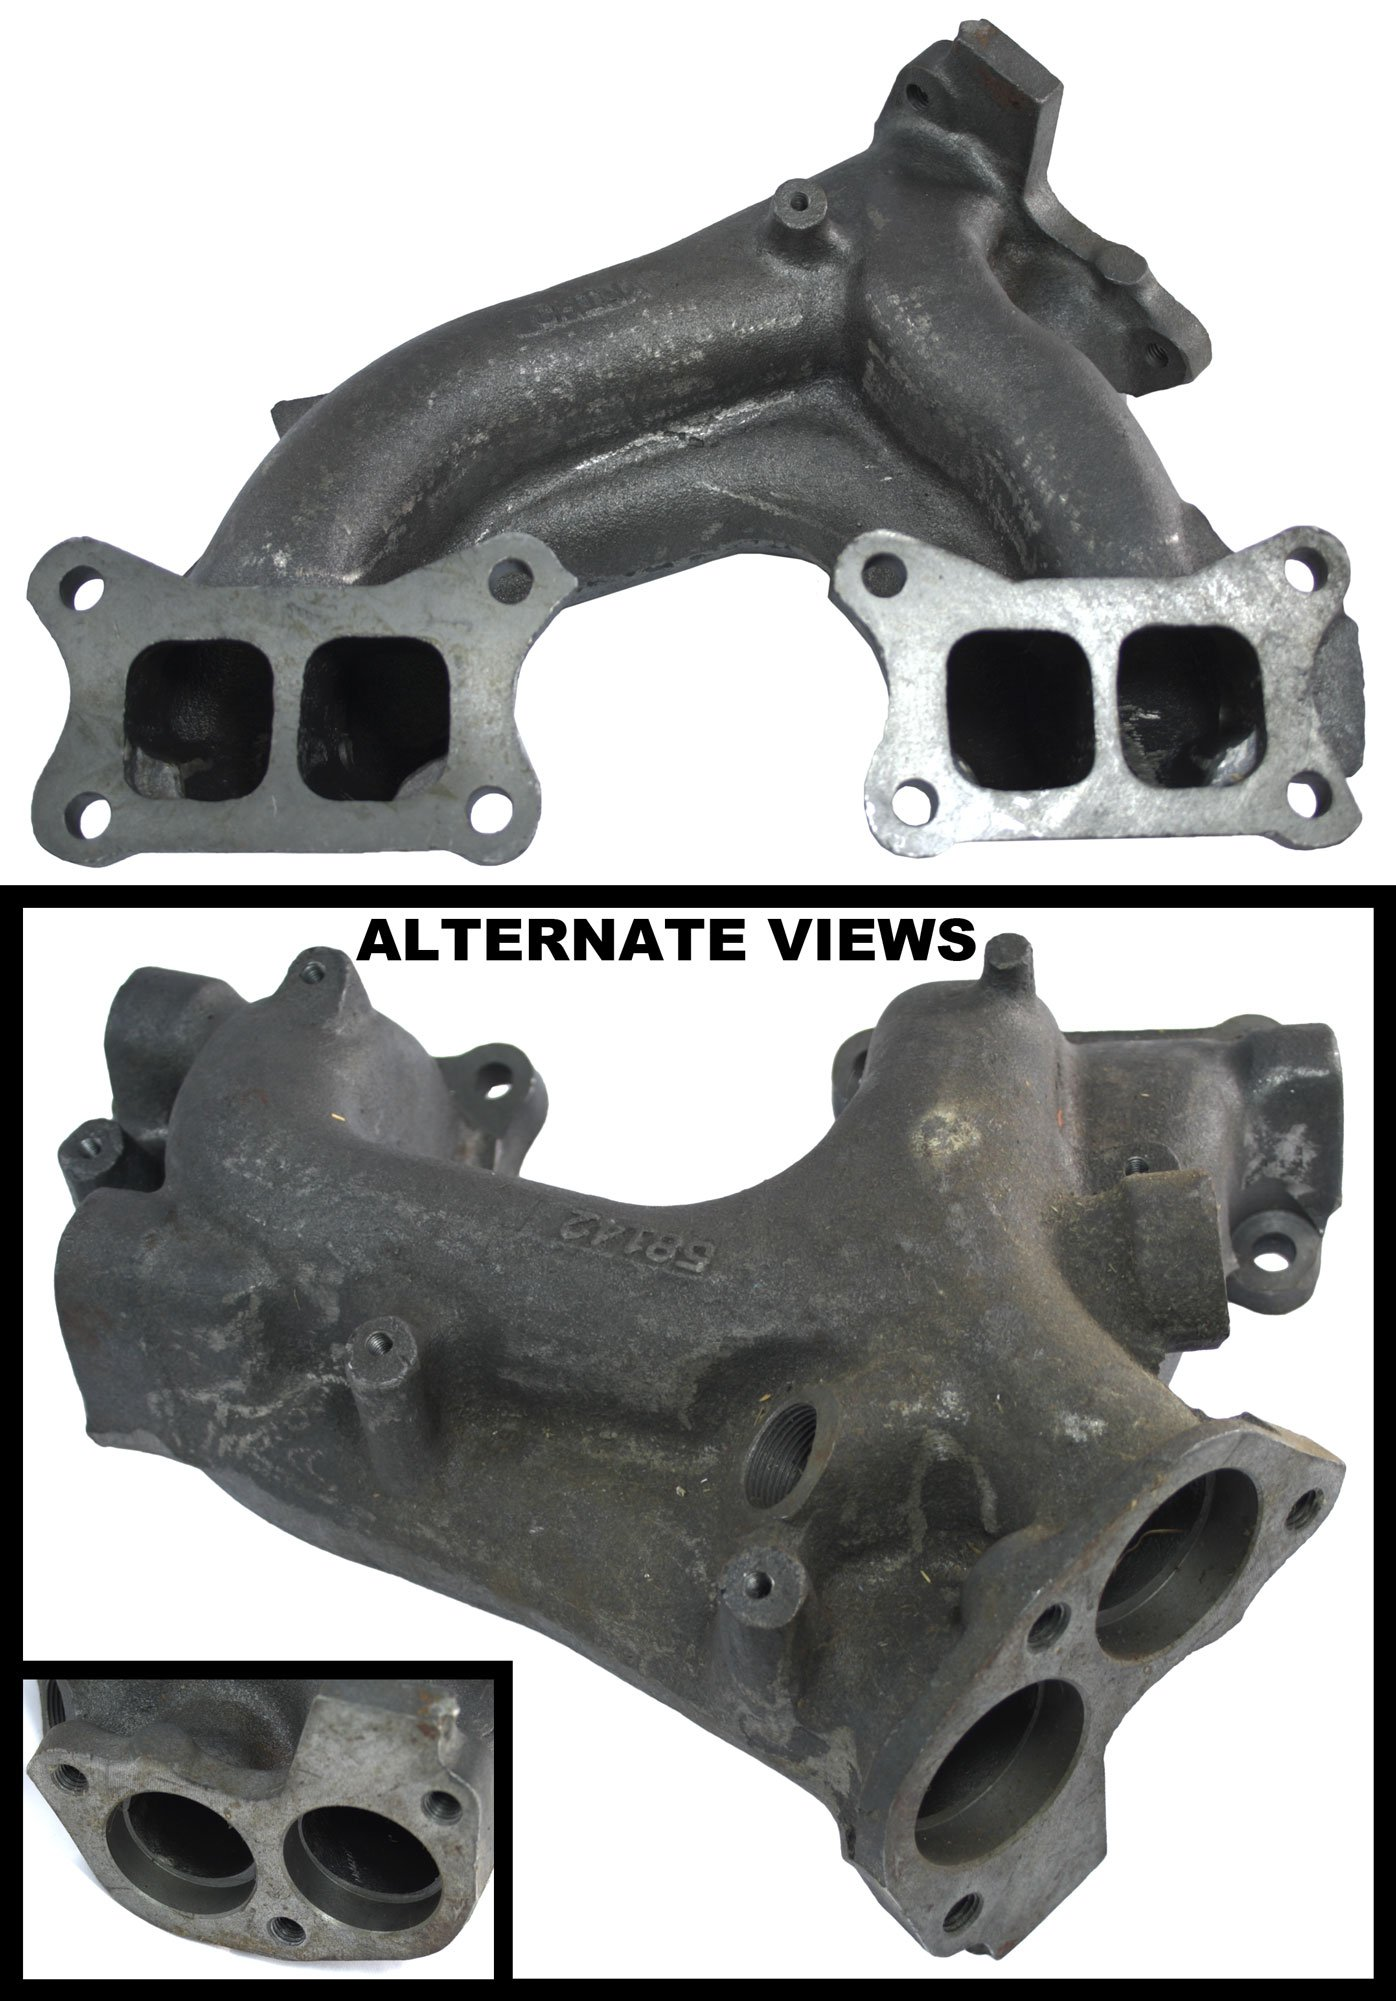 hight resolution of apdty 14002 14c00 exhaust manifold cast iron assembly fits 1986 1989 nissan d21 pickup